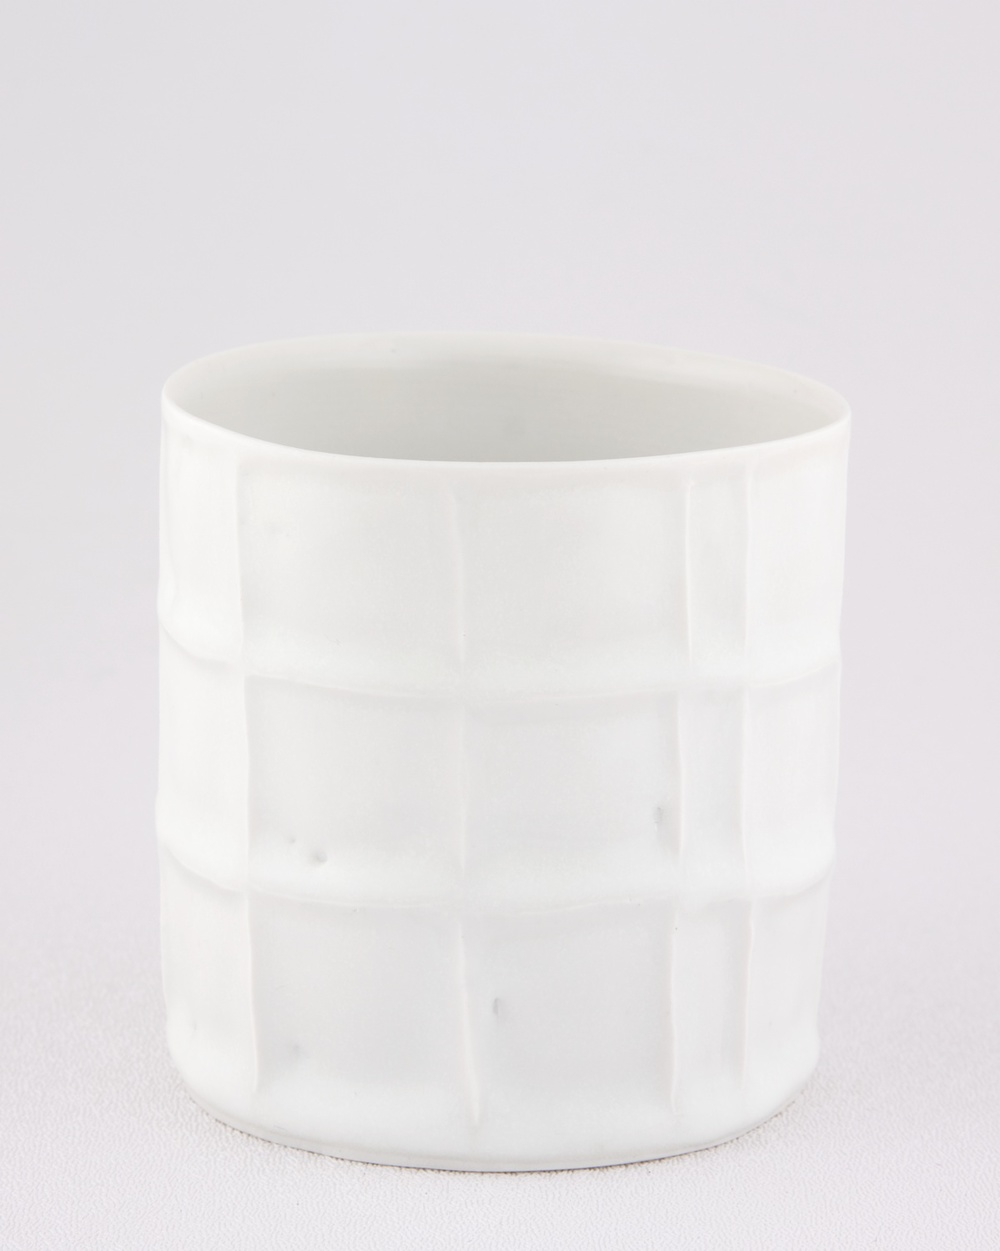 Shio Kusaka  Untitled (cup)  2009 Porcelain 3 ⅜h x 3 ⅛w in SK015